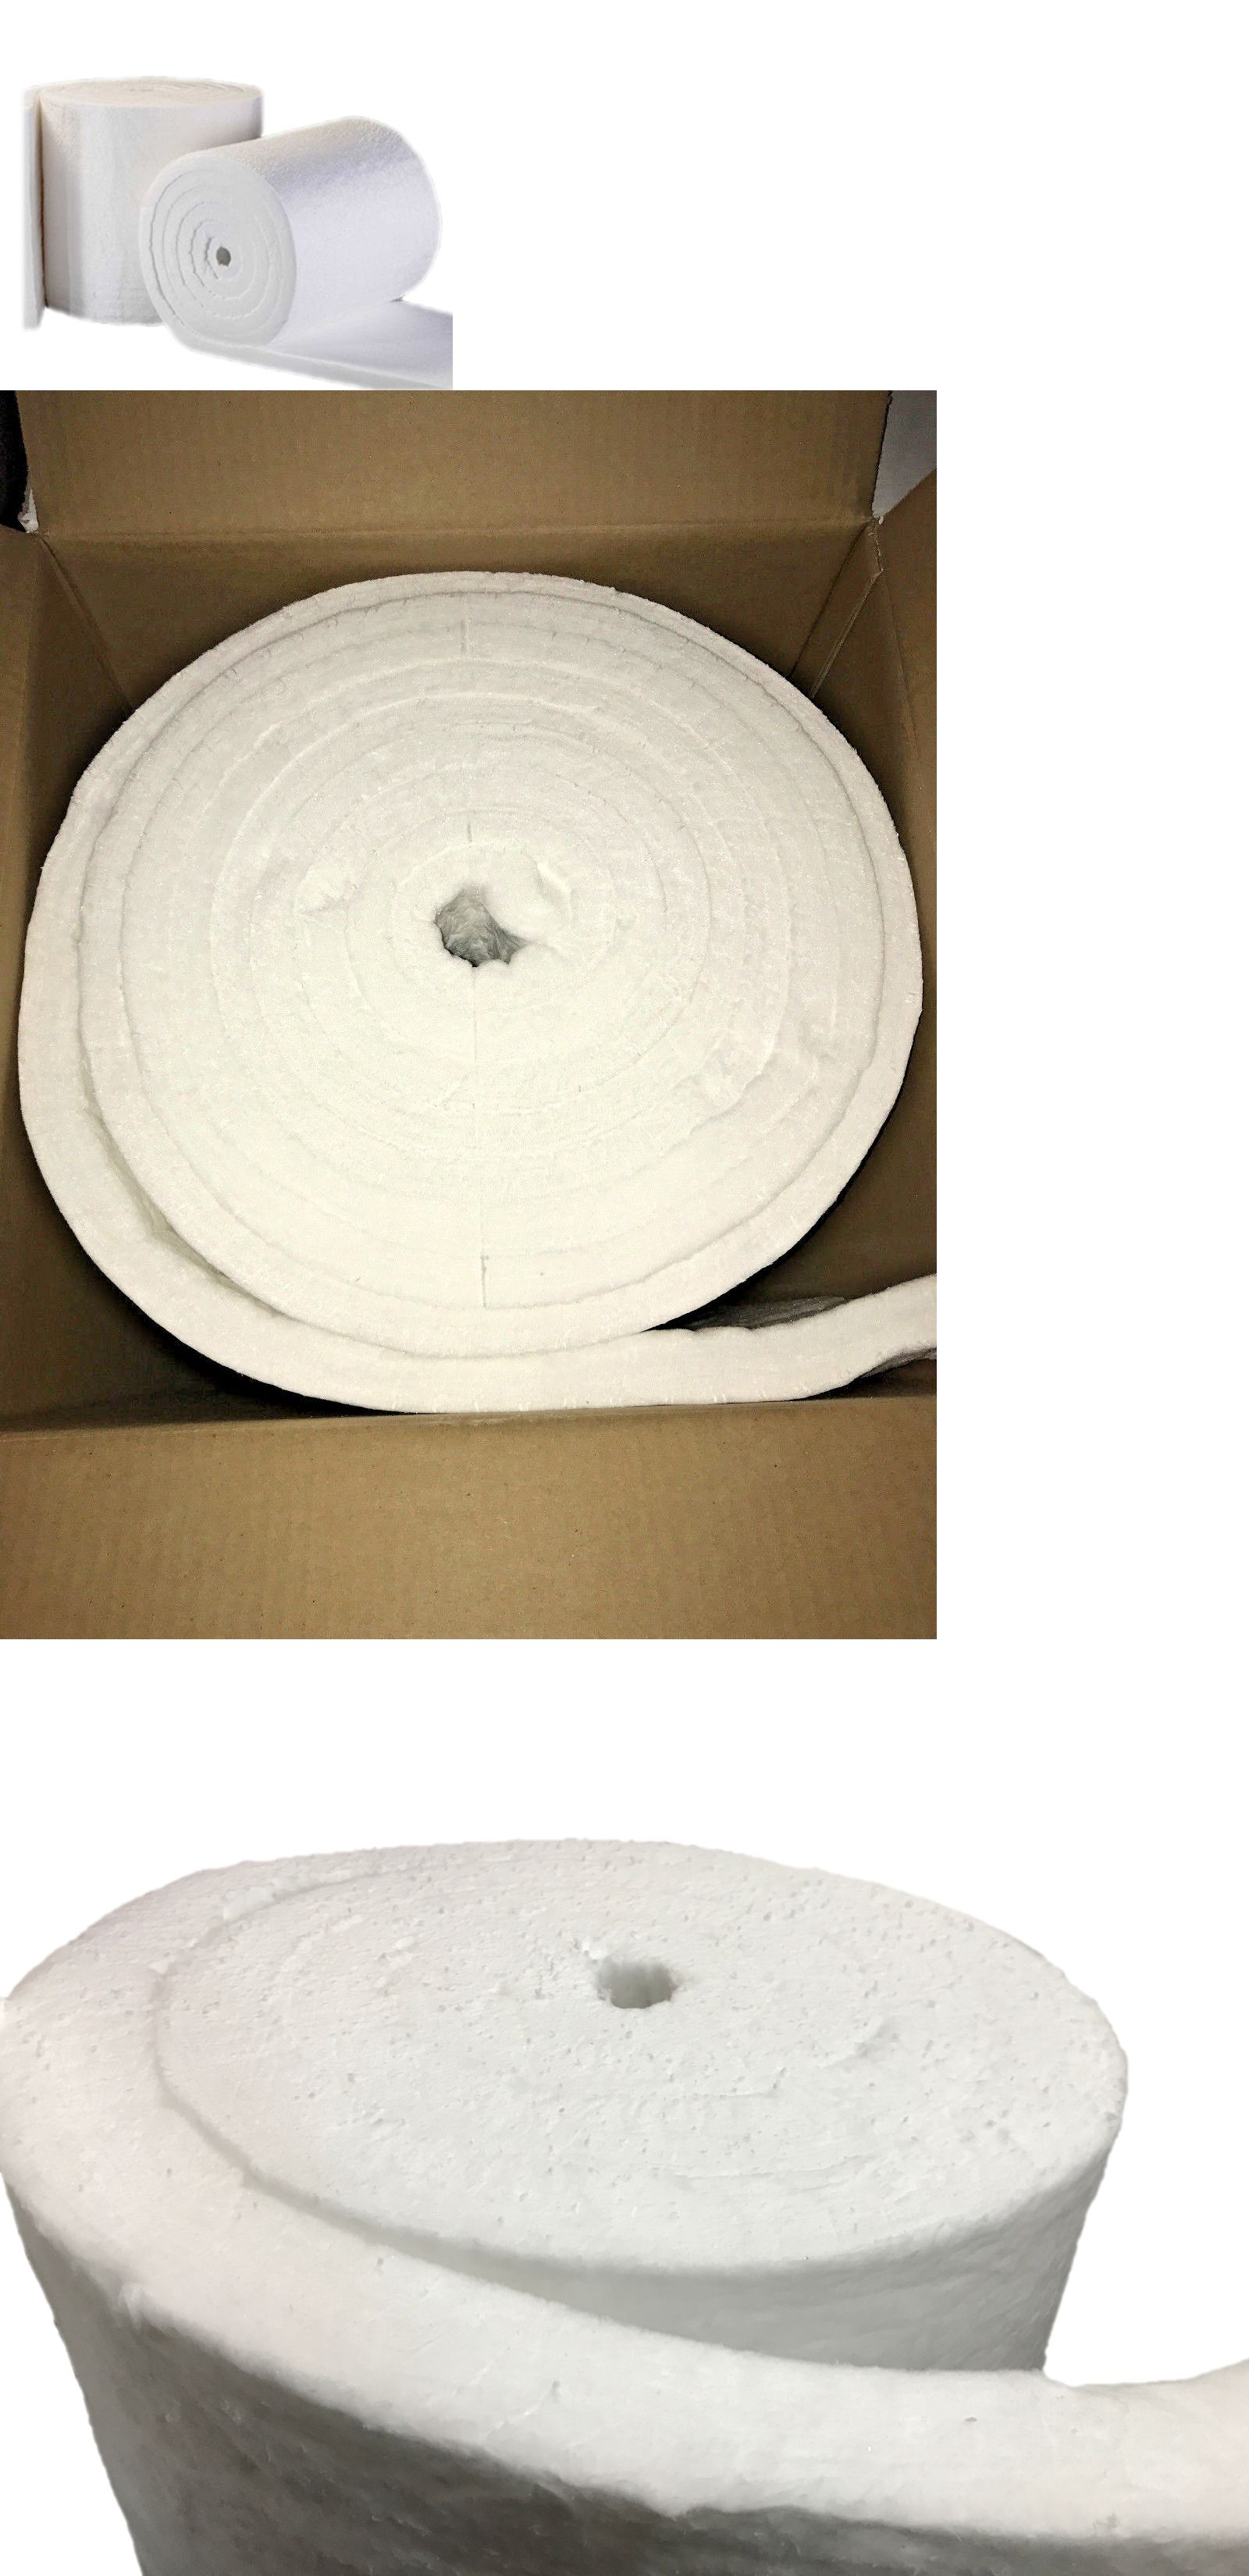 Other Ceramics And Pottery 183307 Ceramic Fiber Insulation Blanket 2300f 8lb 1 Inch X 24 Inch X 8 Foot Ro Ceramic Fiber Ceramic Fiber Blanket Fiber Insulation